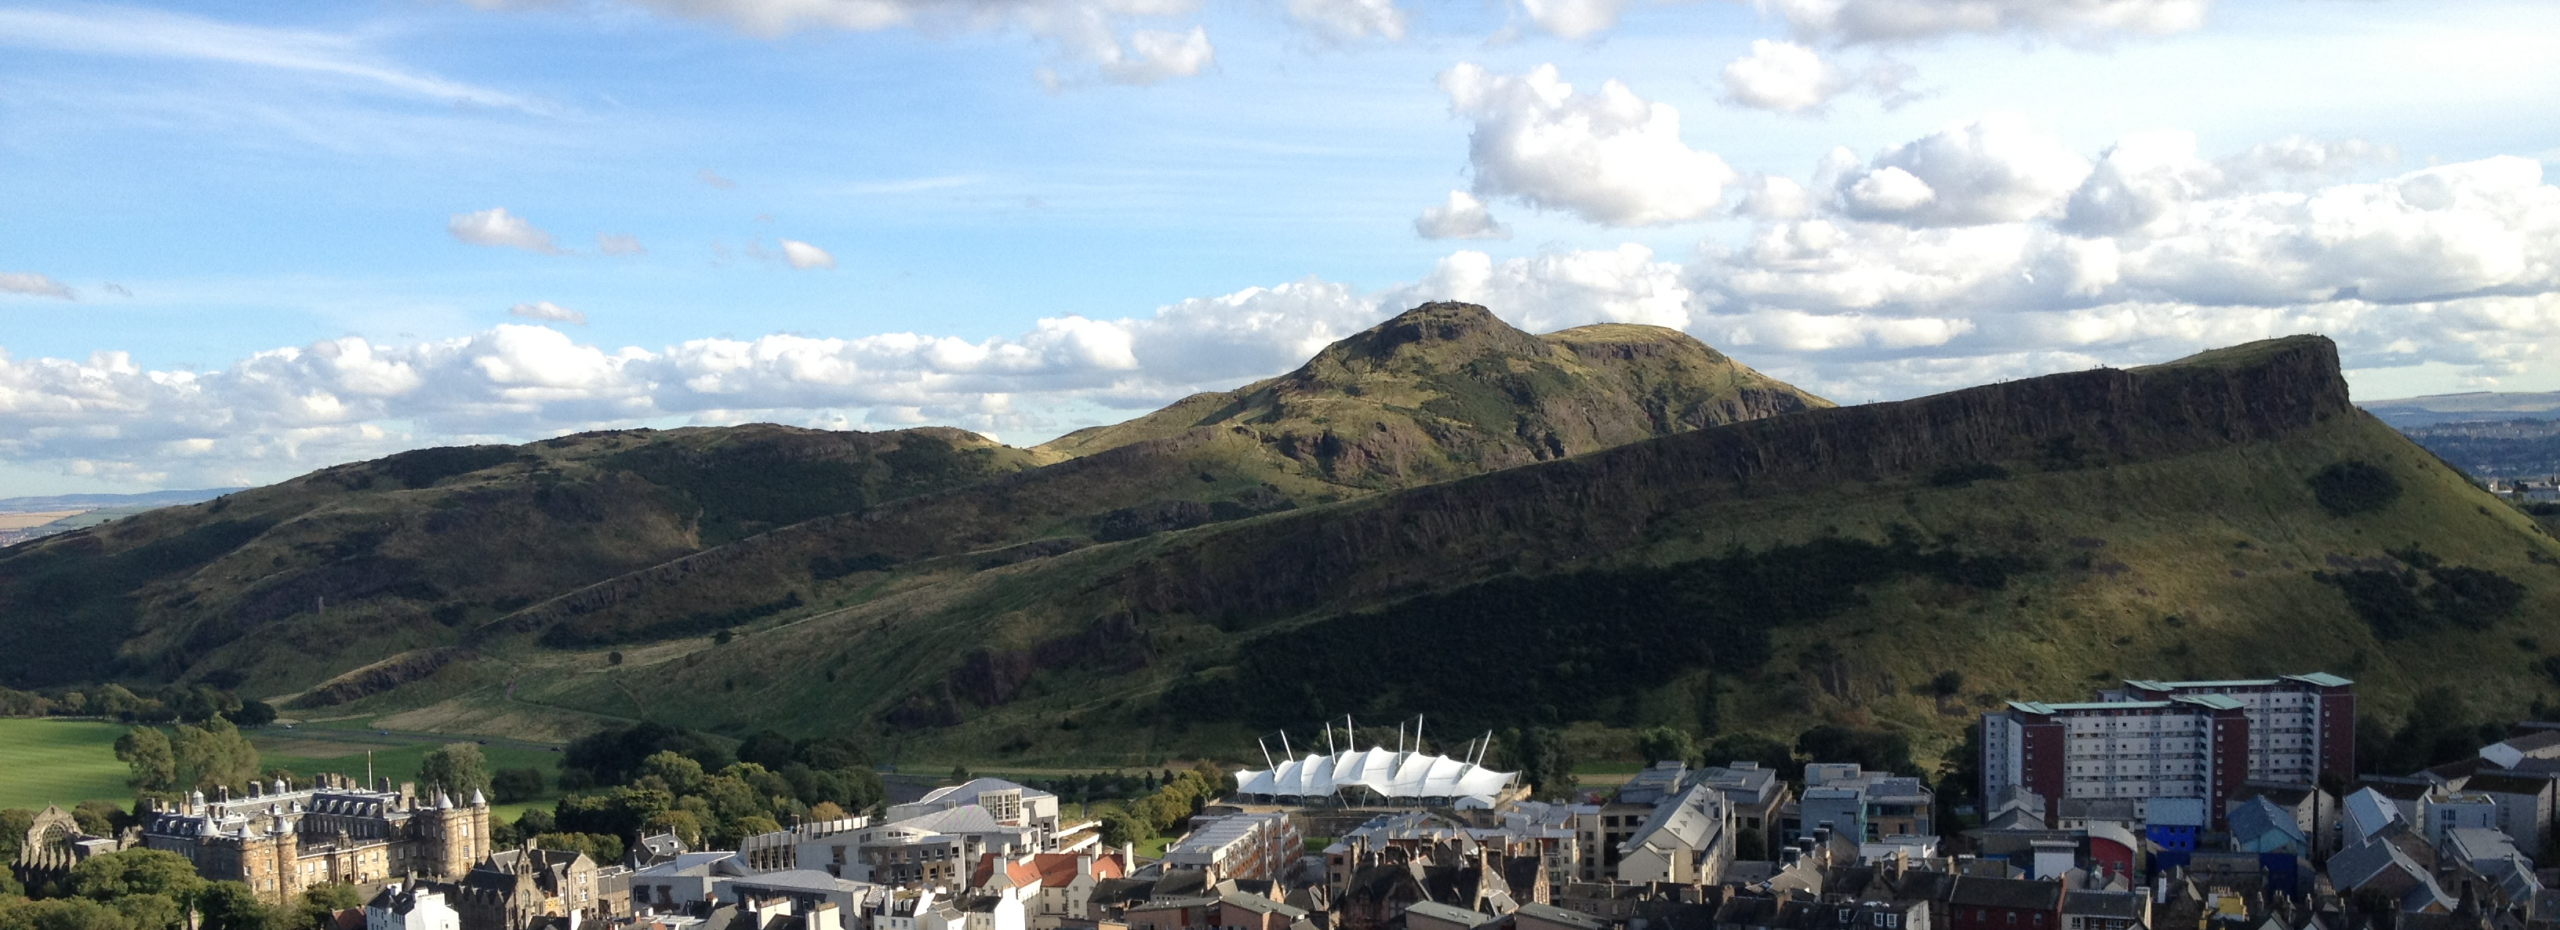 Arthur's Seat and the Salisbury Crags